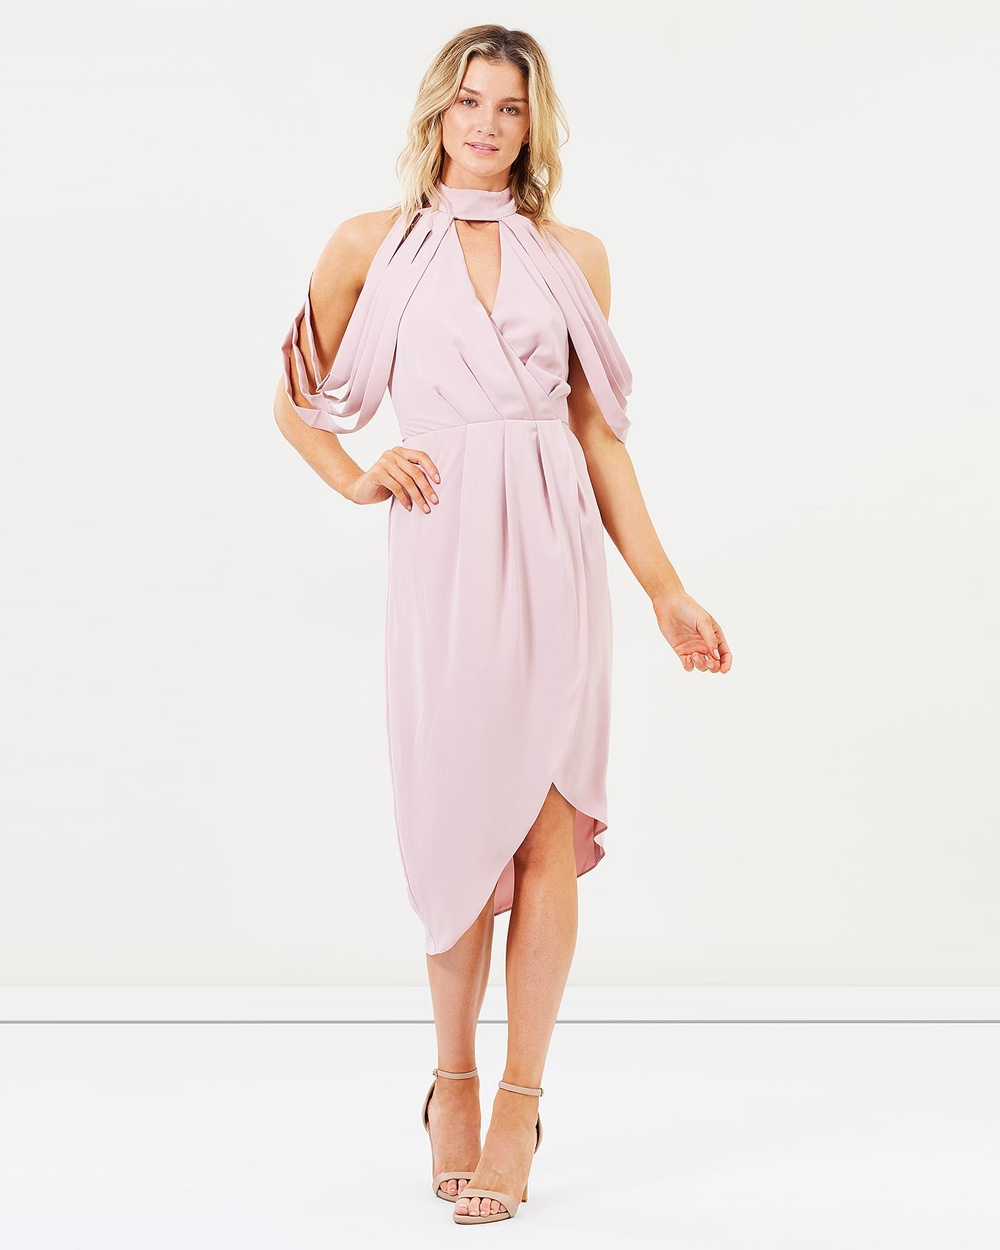 Elliatt Viola Dress Dresses Pink Viola Dress